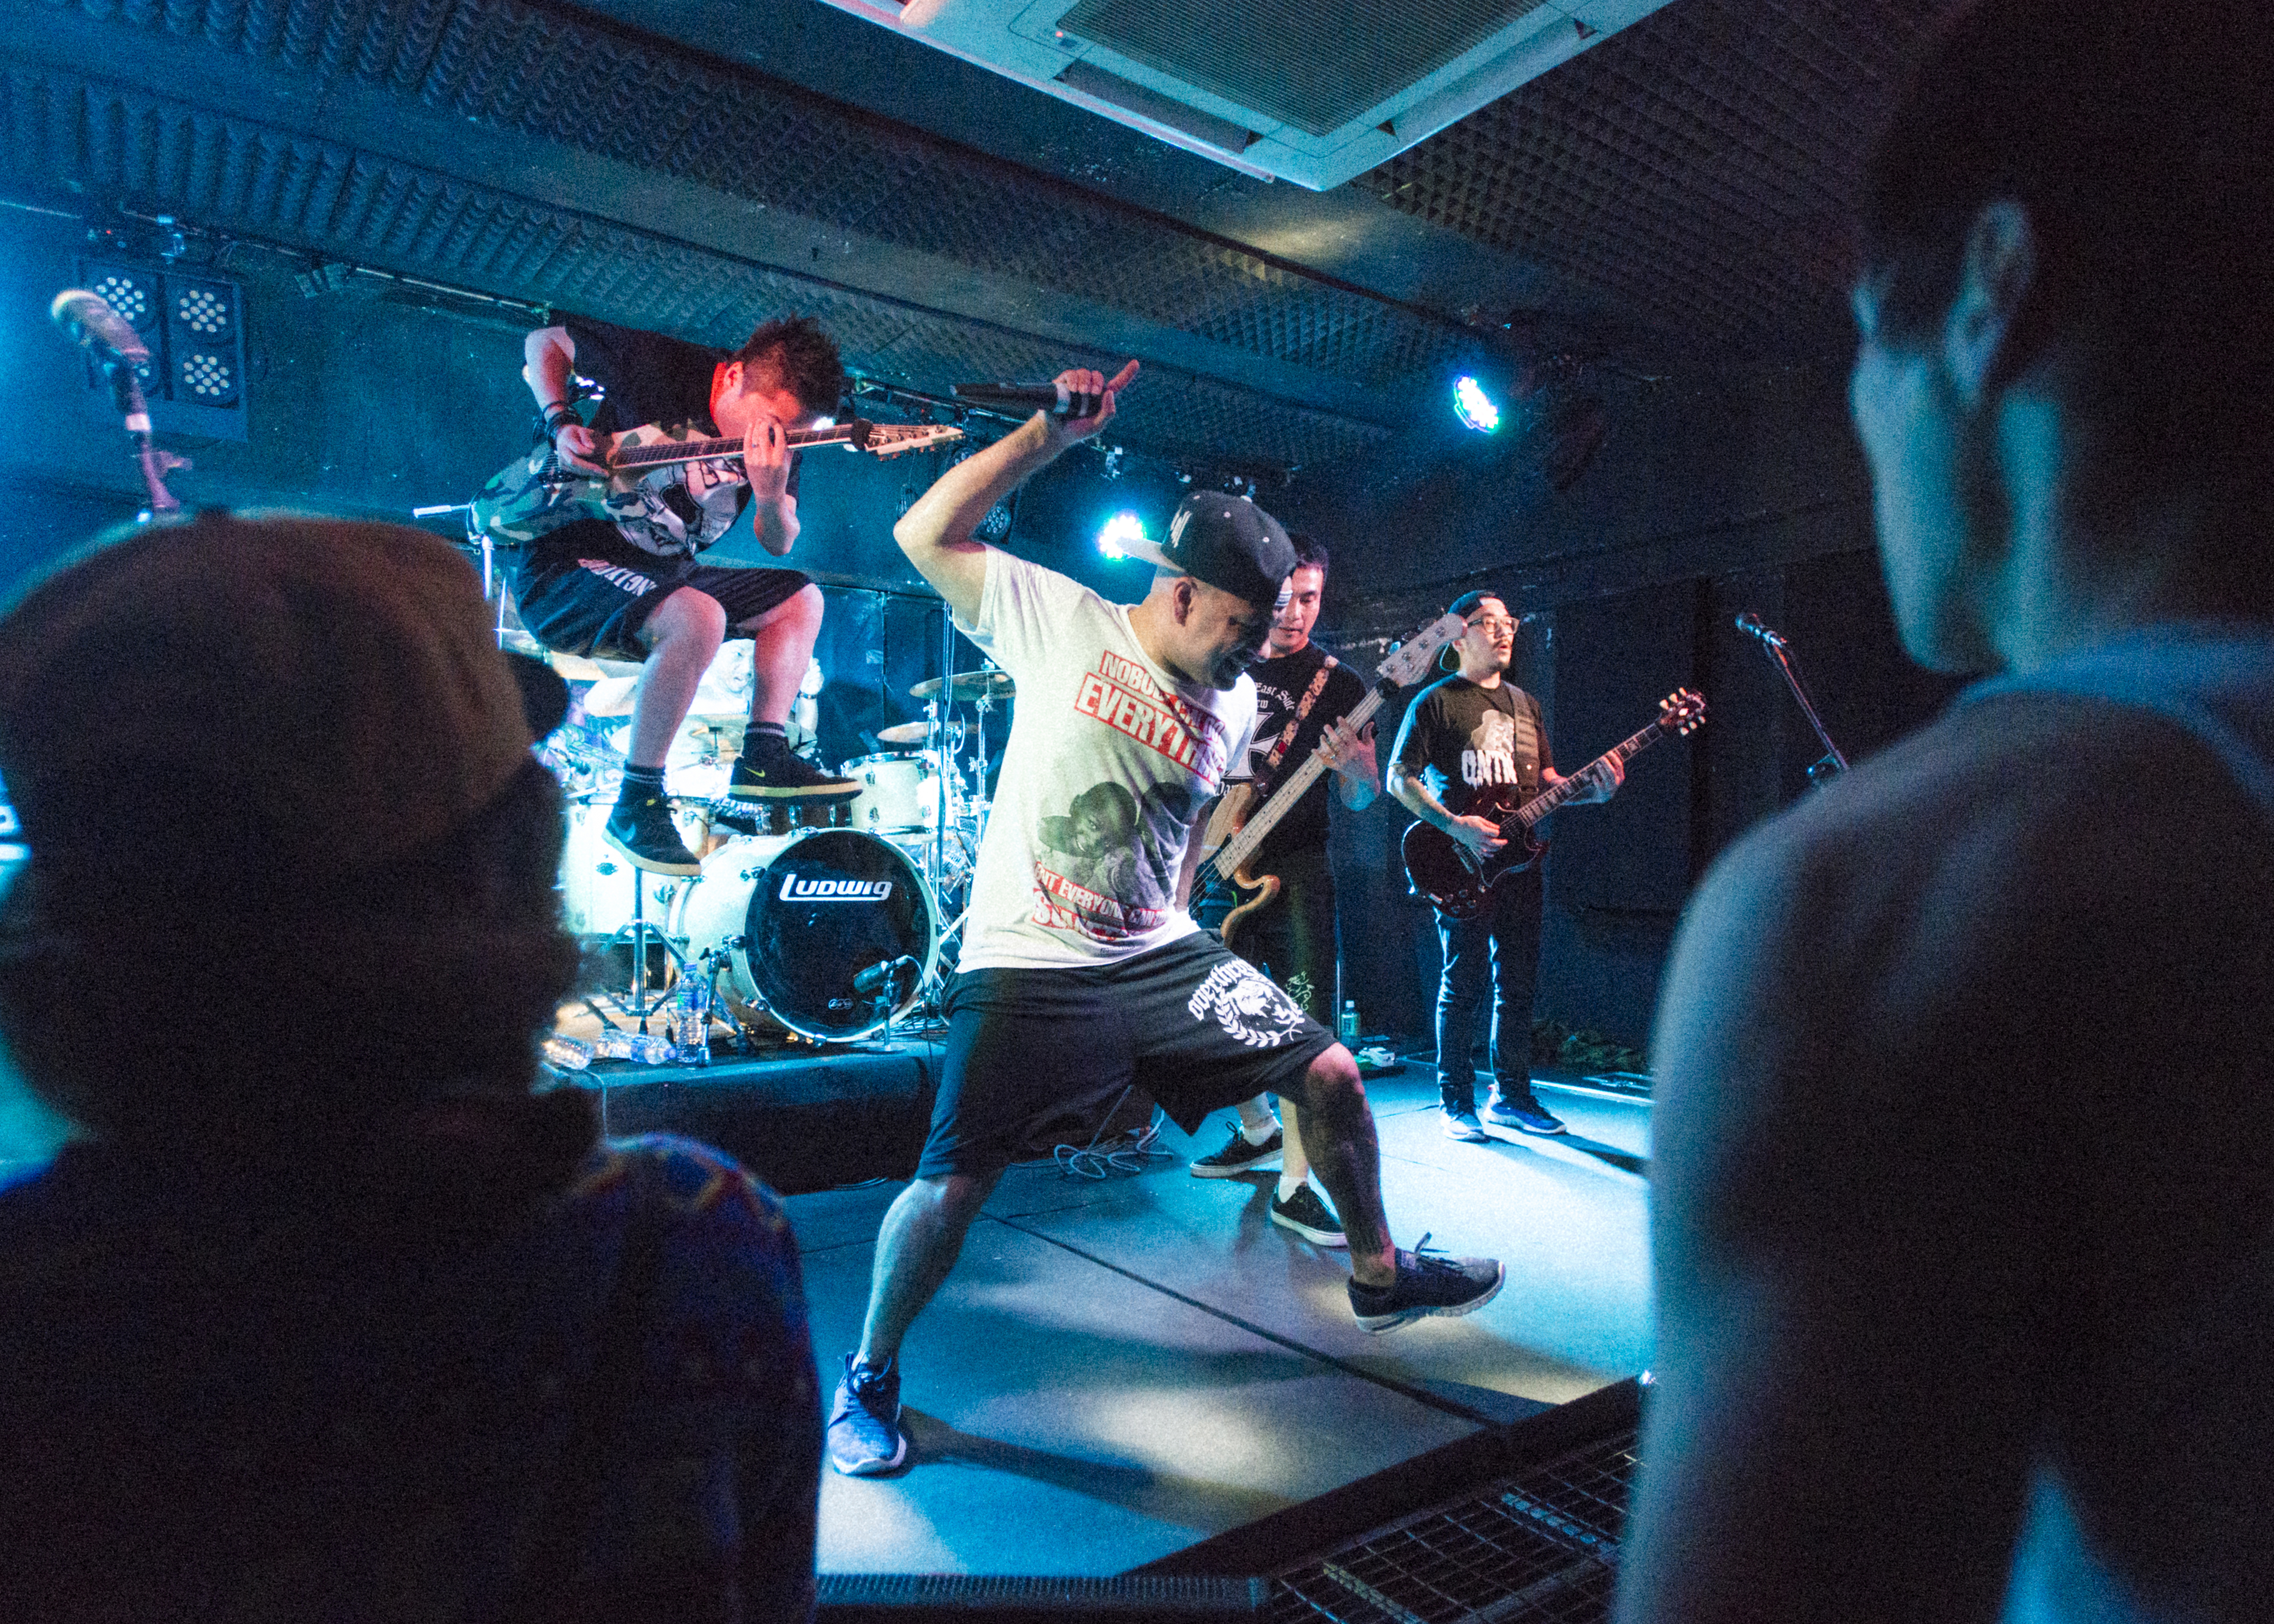 1. Young fans enjoy the music during a show. 2. King Ly Chee on stage during a show. The band has been a major player in the local Hong Kong music scene for more than 15 years.